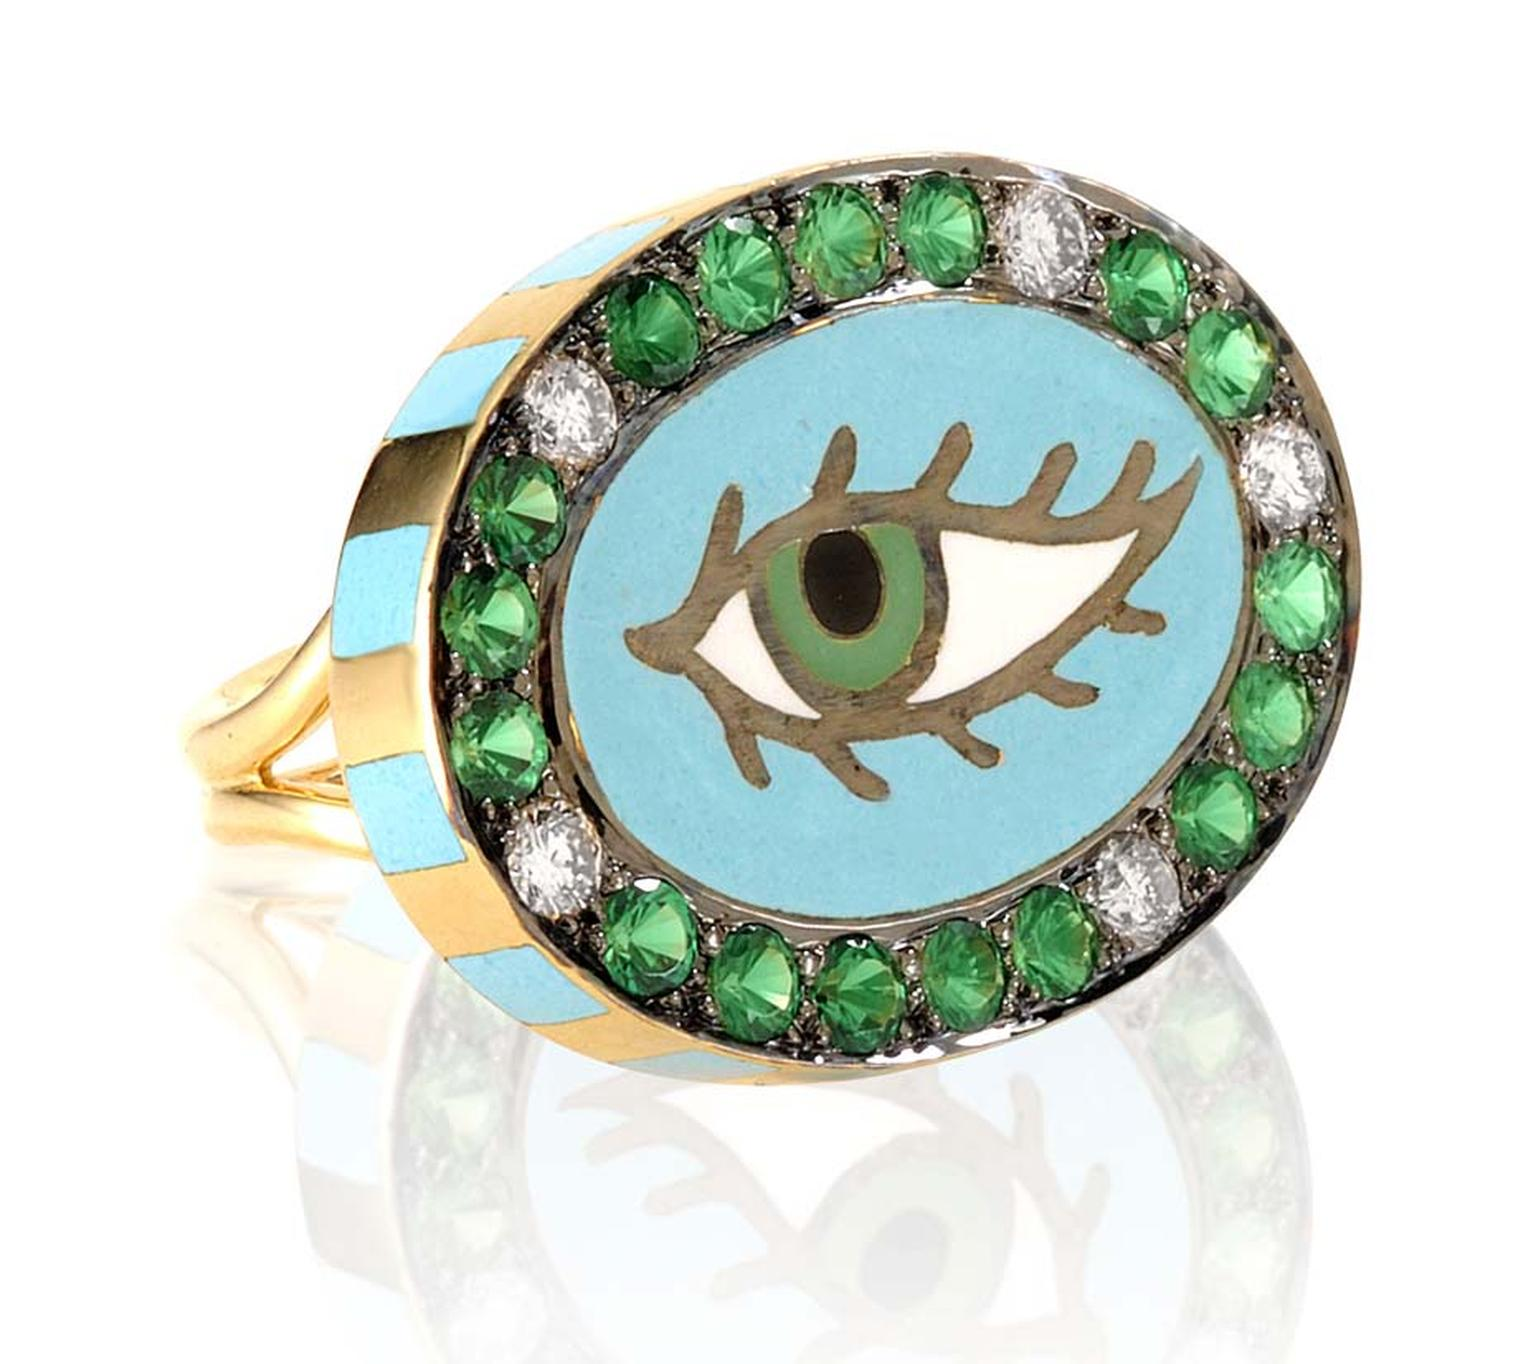 Holly Dyment Green Eye ring featuring vibrant enamelwork, diamonds and coloured stones.